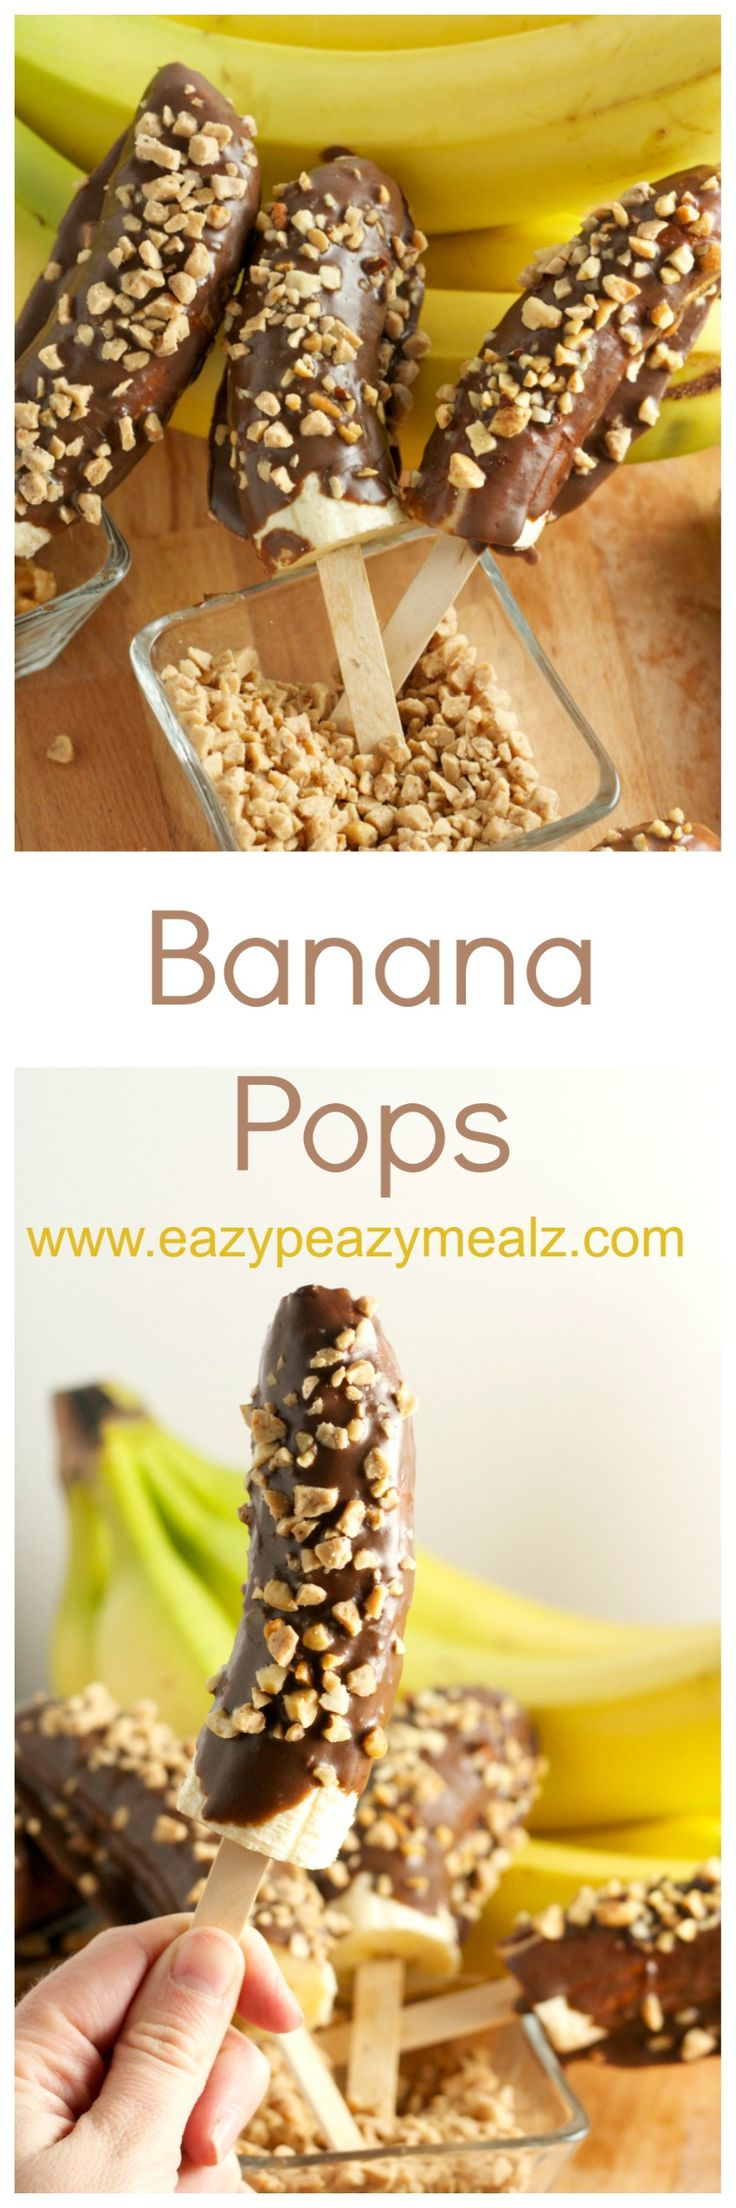 Banana Pops: Not frozen, won't hurt your teeth, so easy to make. Basically the perfect healthy treat! #sp - Eazy Peazy Mealz